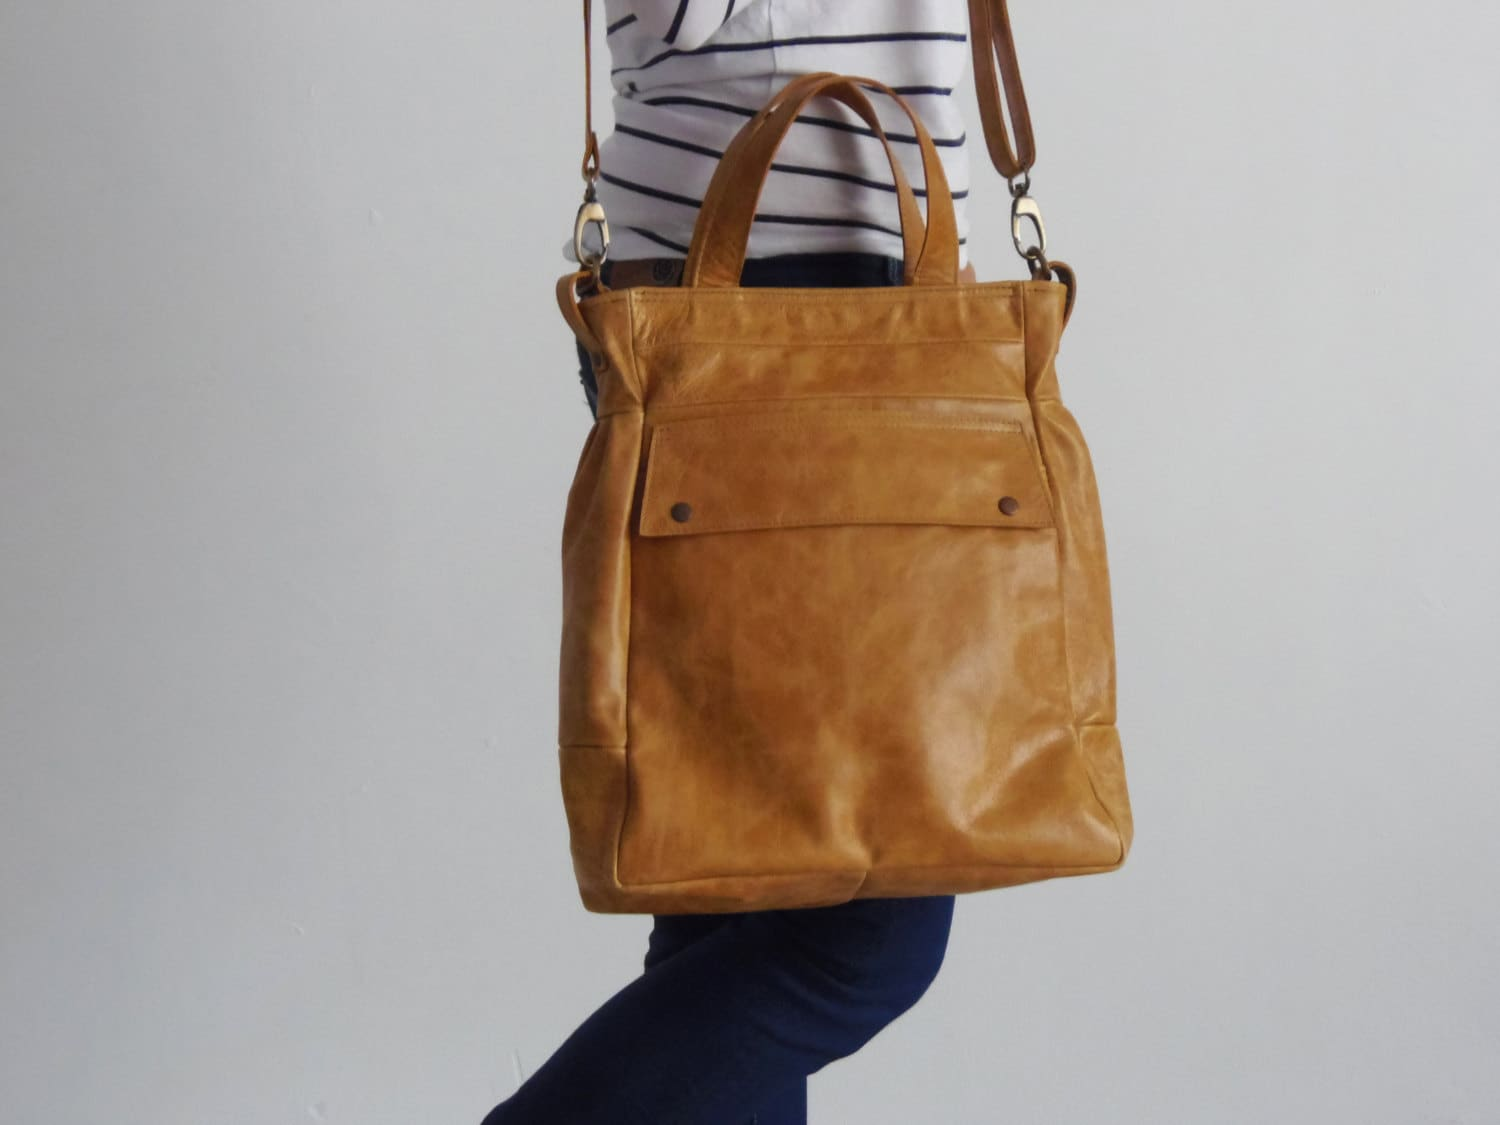 Convertible bag Convertible backpack tote Tan leather tote